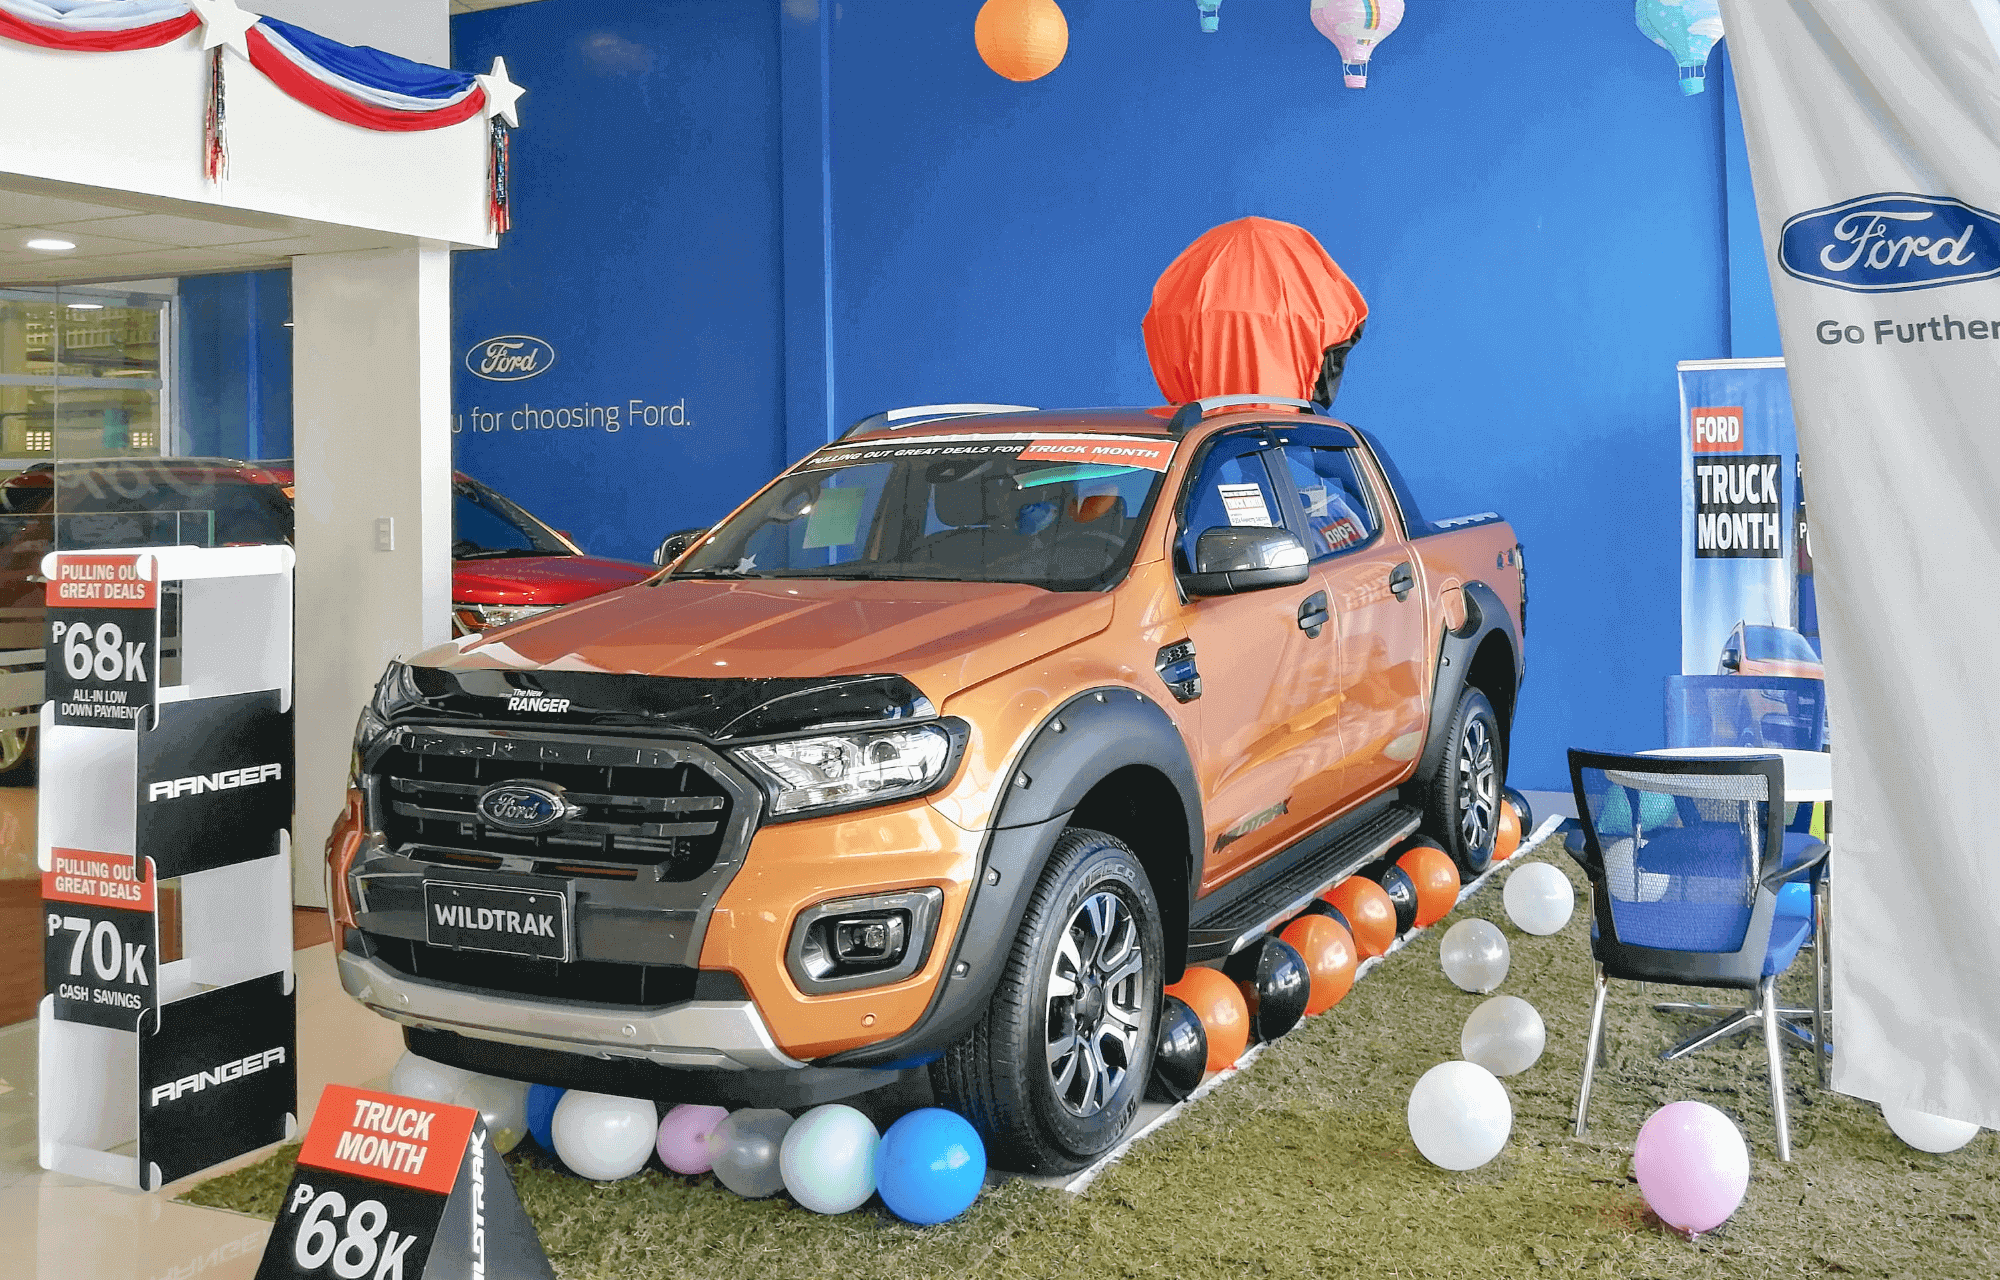 Ford Clark - UP and Away Theme for Ford Truck Month